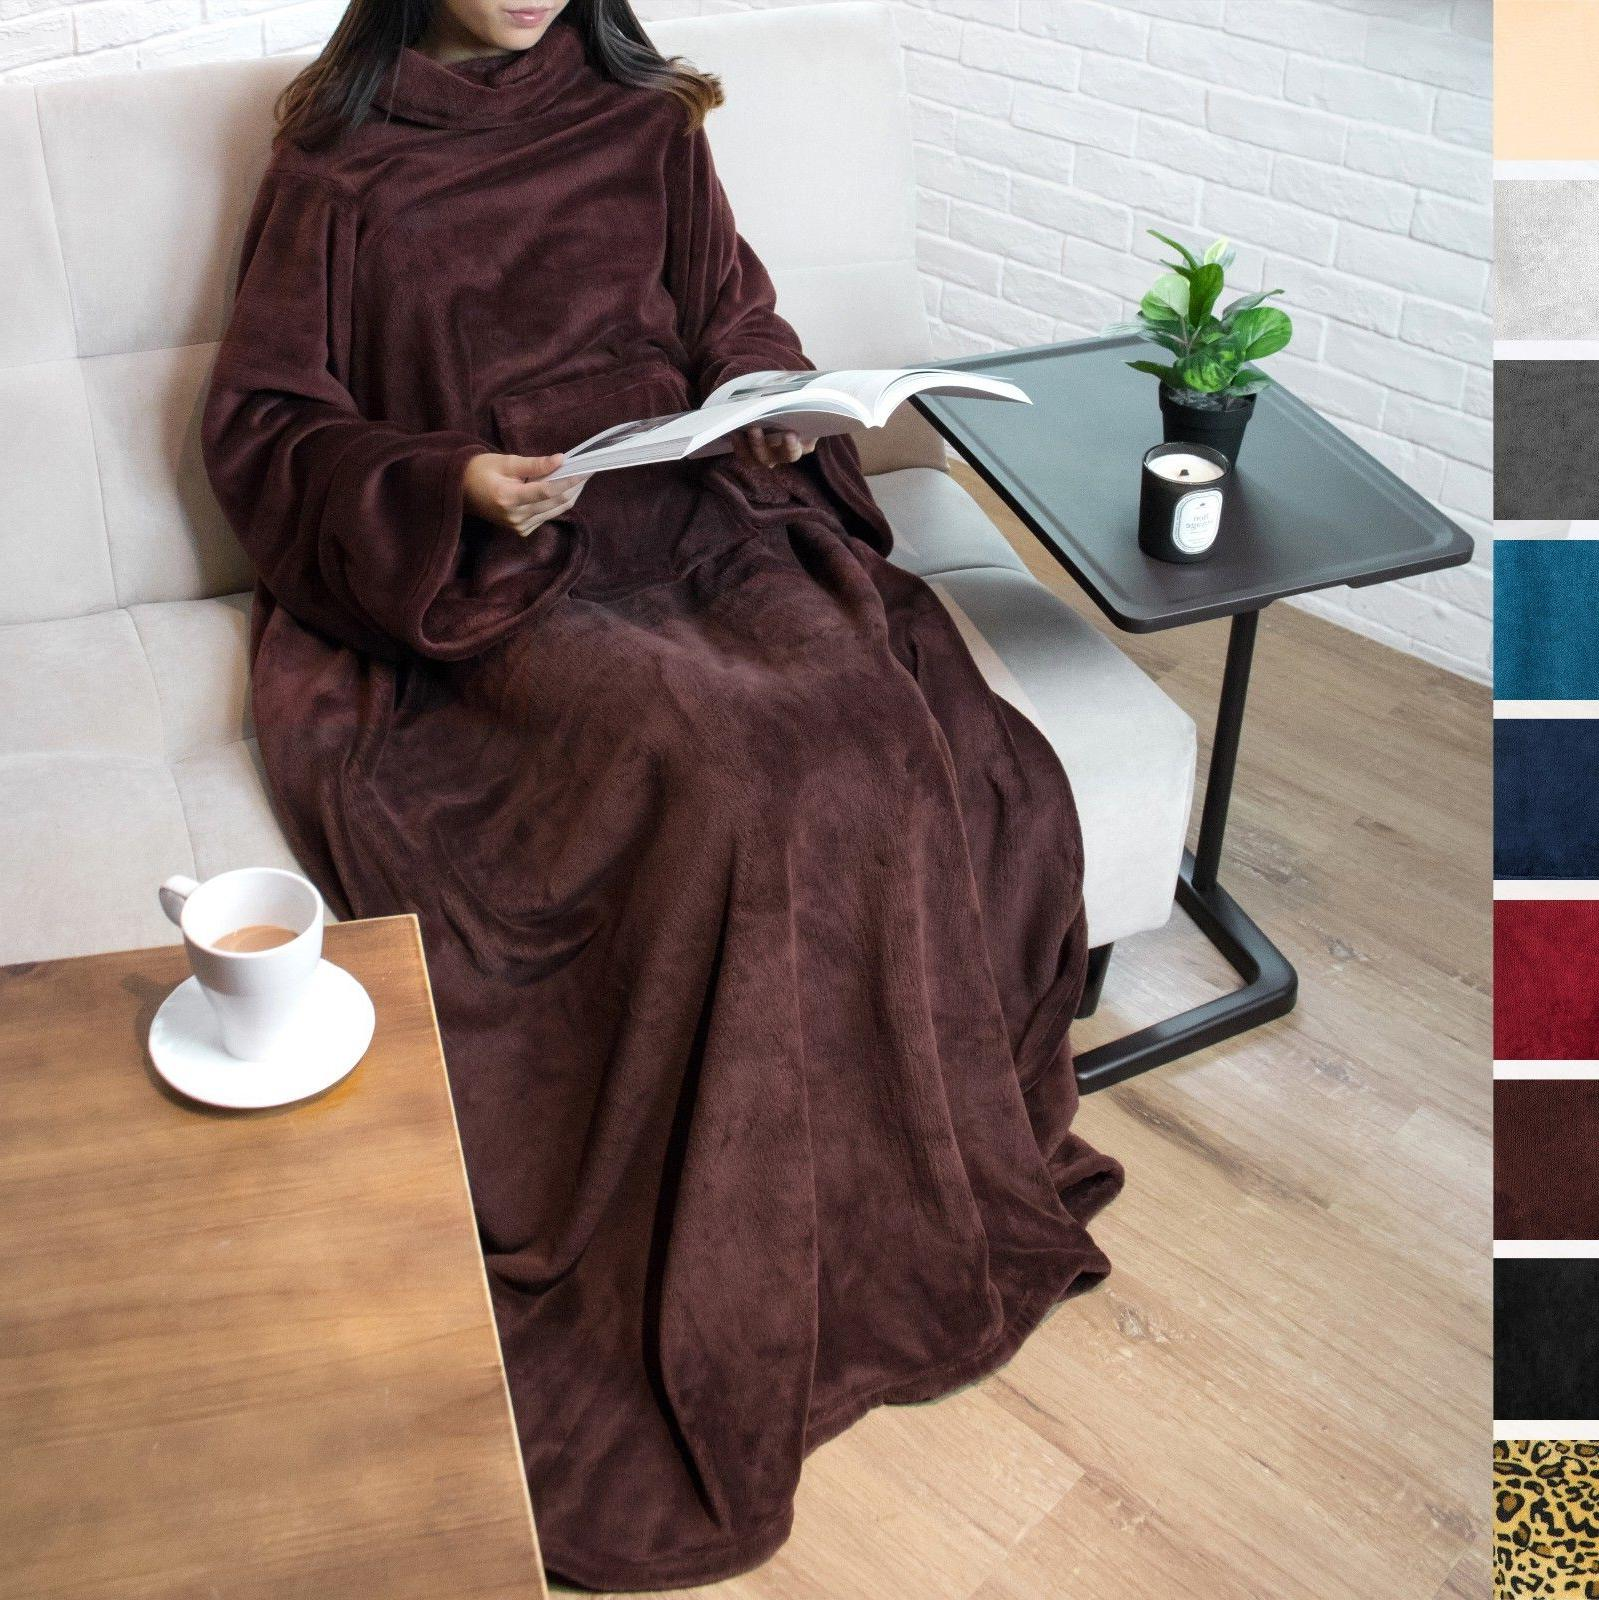 Fleece with Sleeves Pocket Snuggie